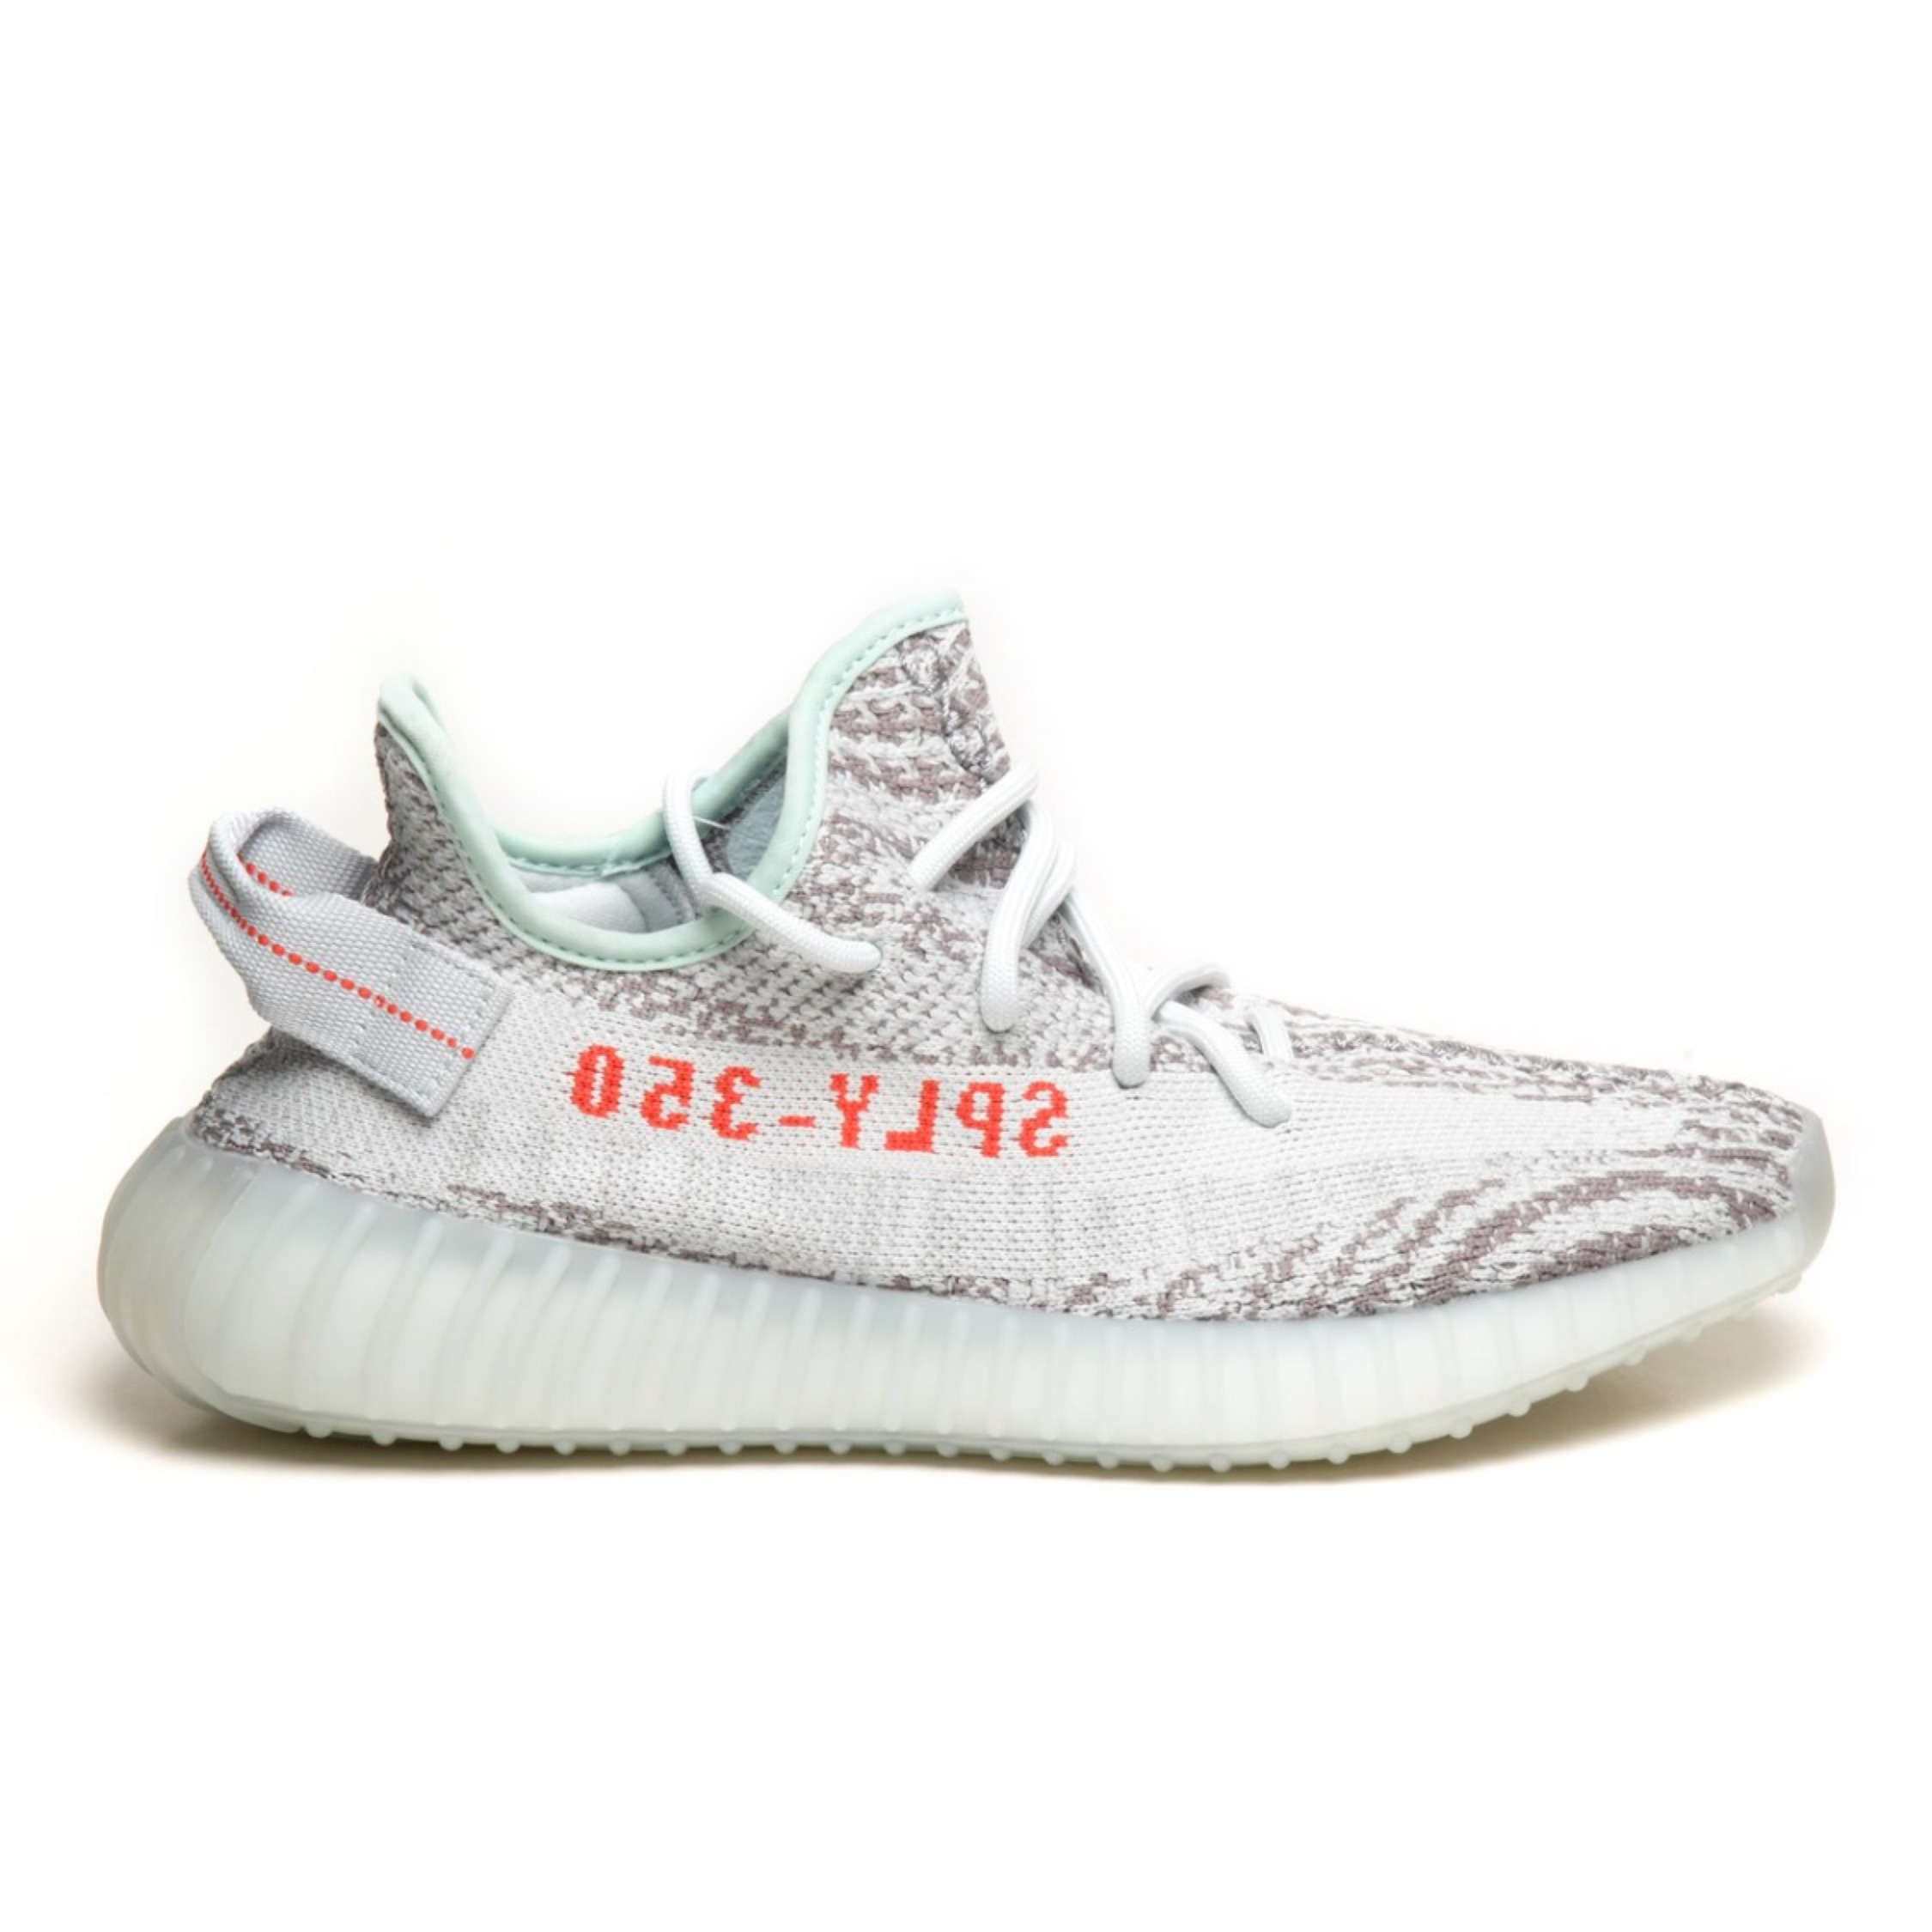 huge selection of ced7e 0a07a Adidas Yeezy 350 Boost V2 Blue Tint